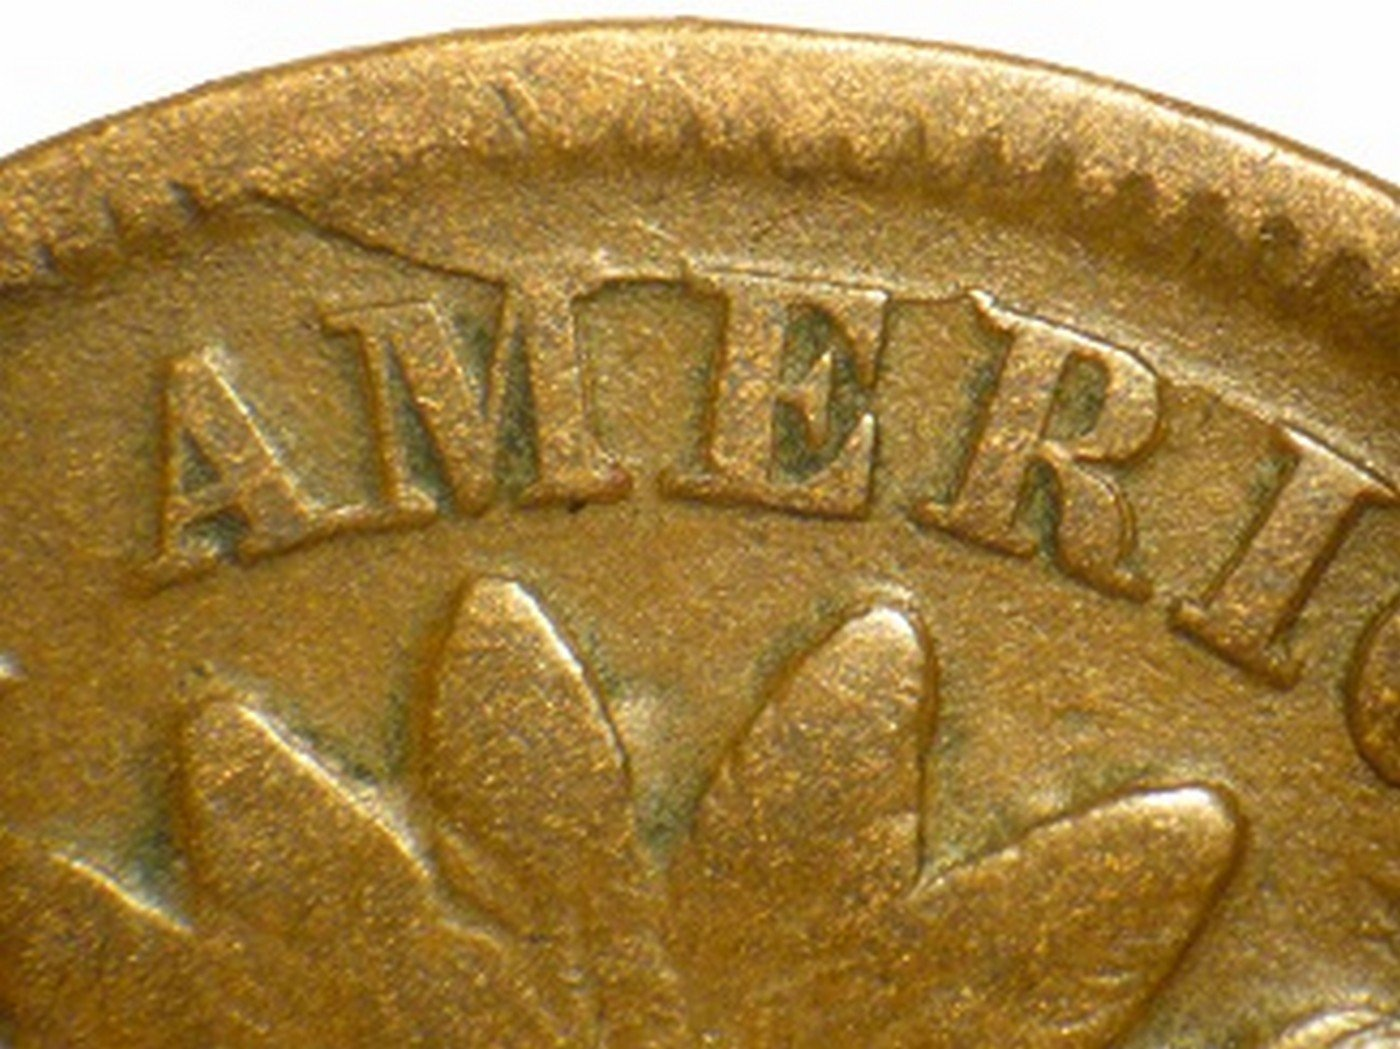 1865 Fancy 5 RPD-005 - Indian Head Penny - Photo by David Poliquin